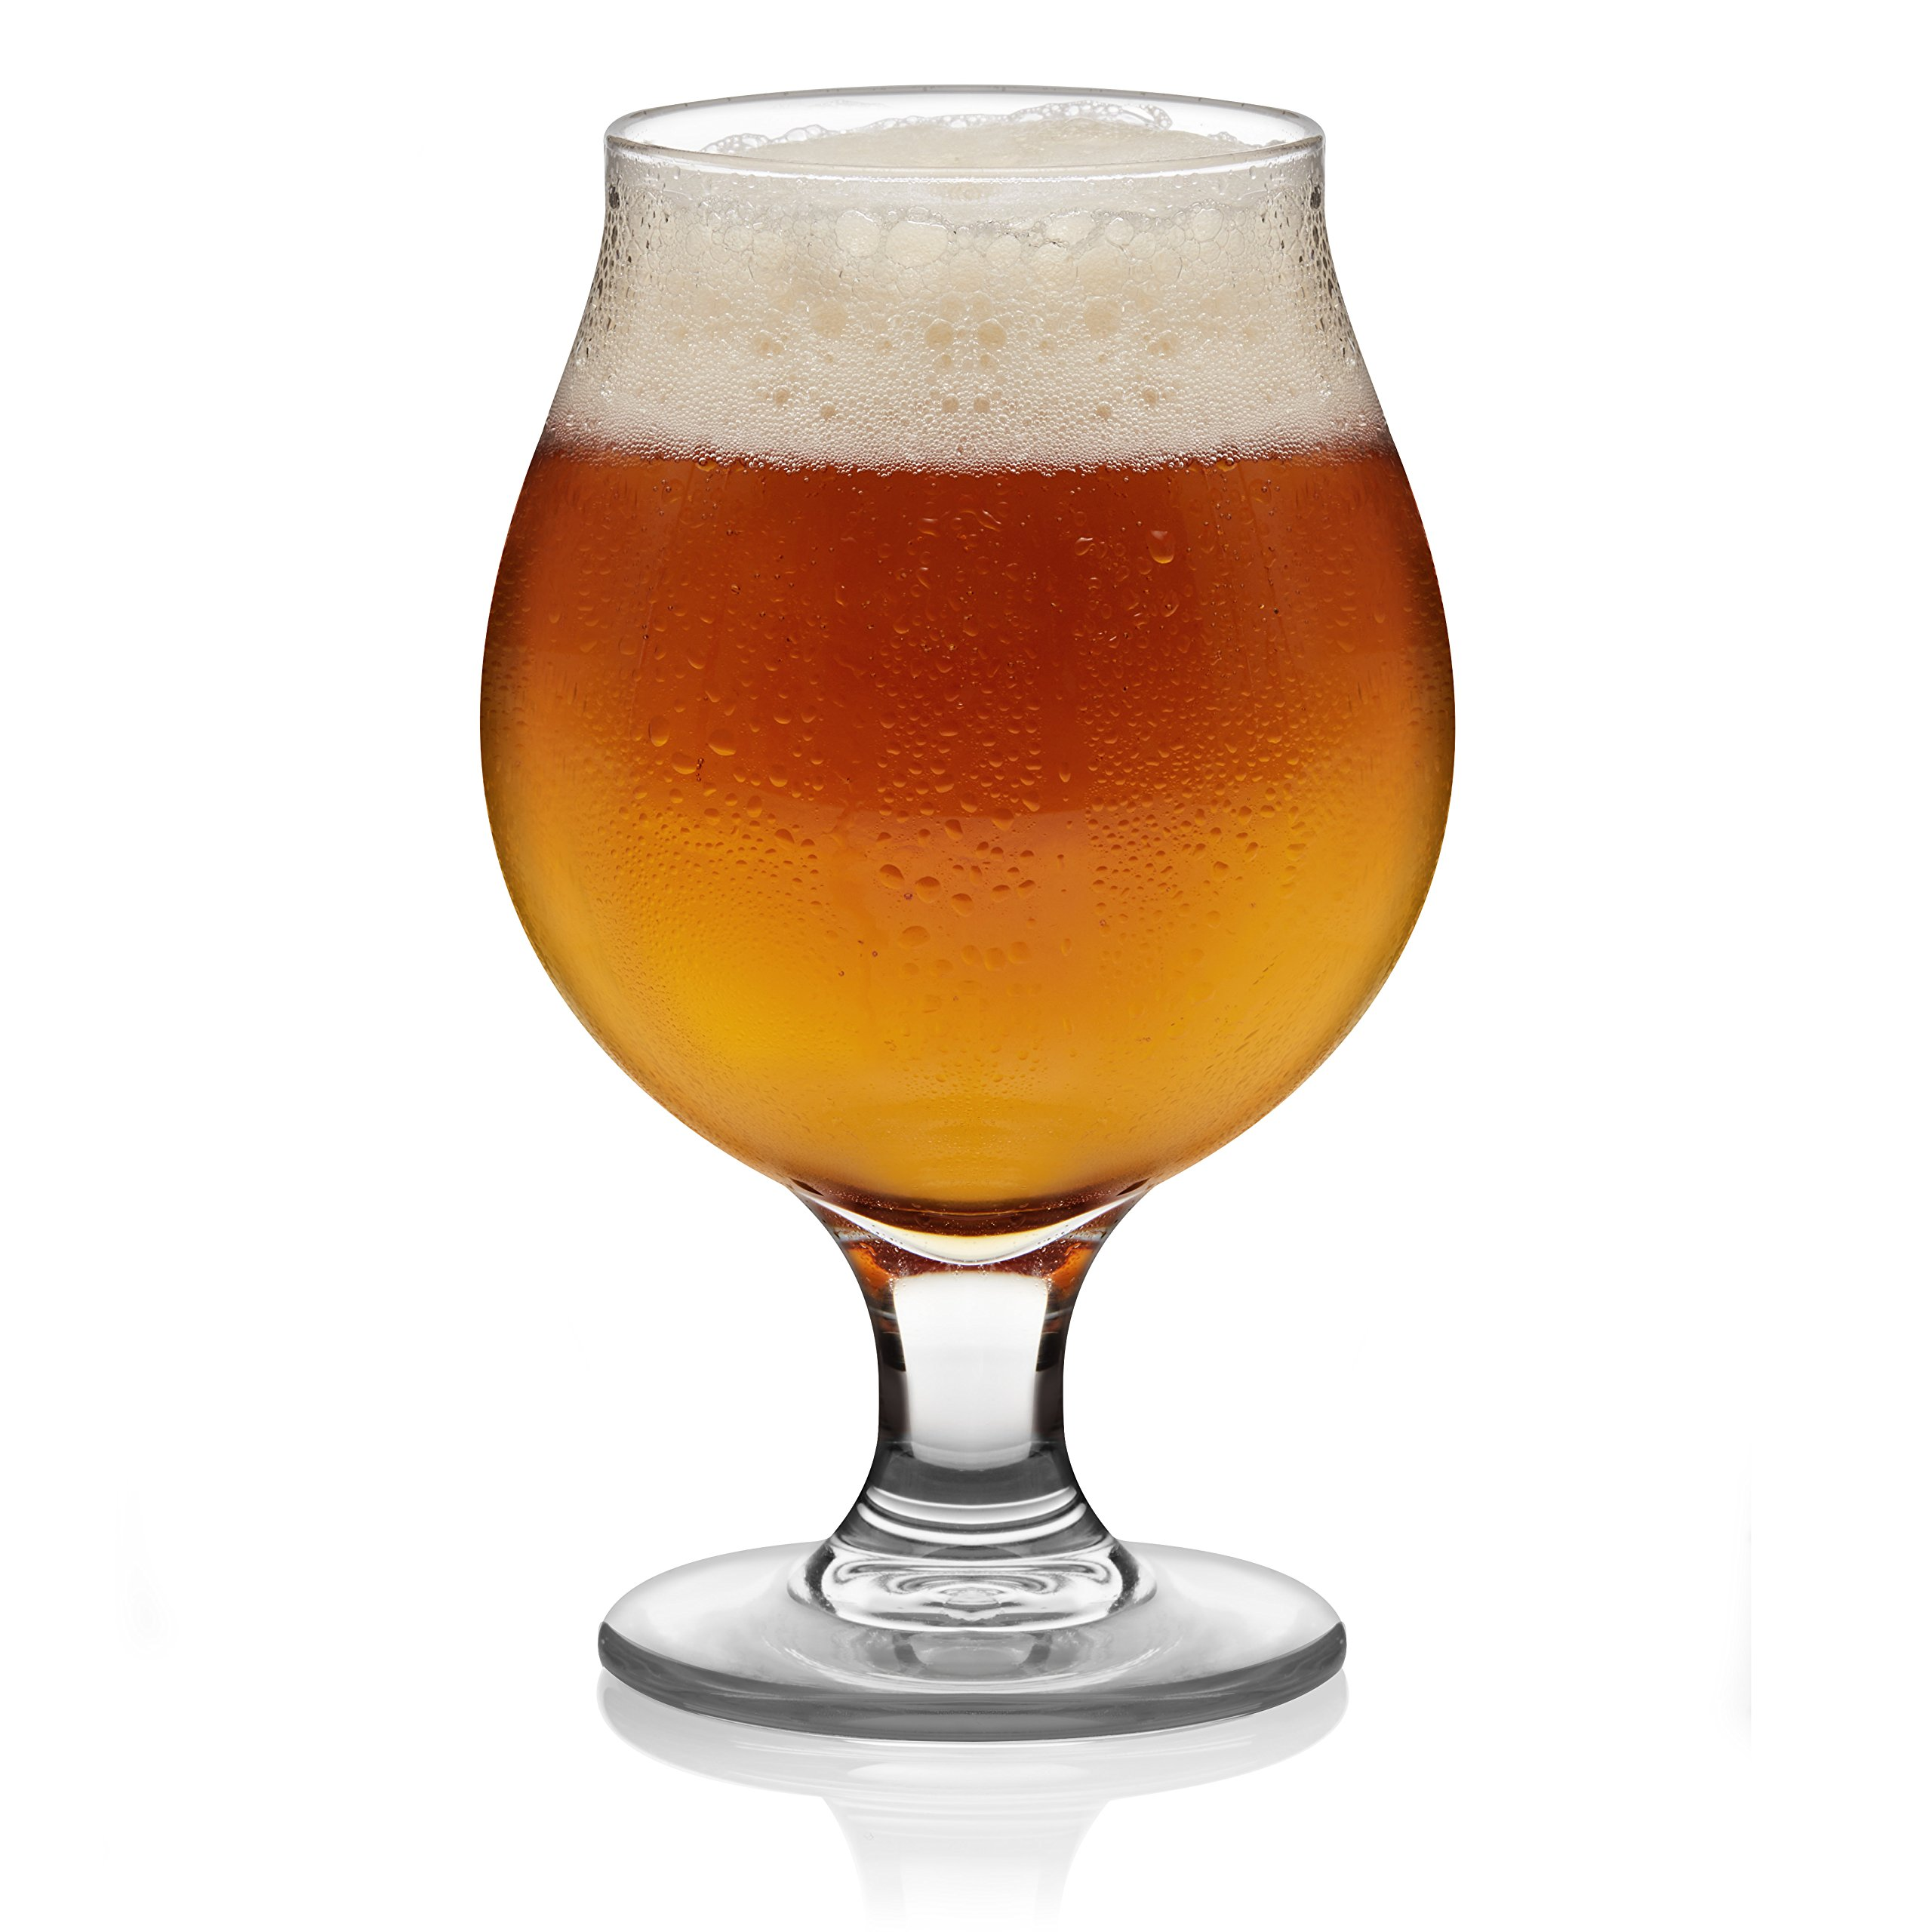 Libbey Craft Brews Belgian Ale Beer Glass, 16-ounce, Set of 4 by Libbey (Image #1)